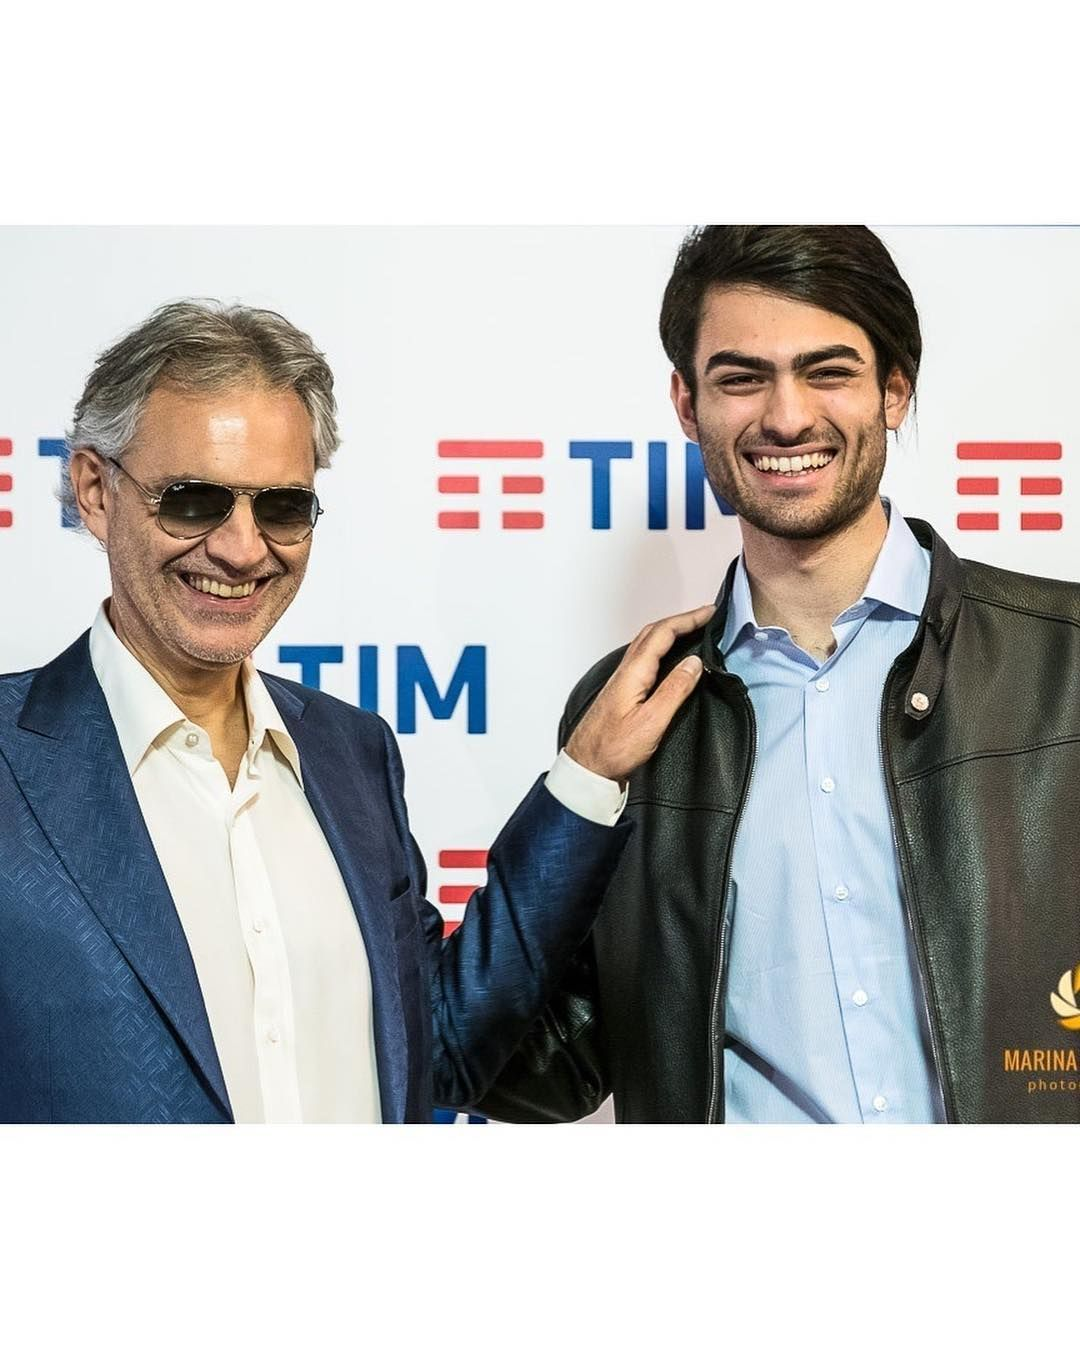 Matteo Bocelli Fan On Instagram Some Pictures Of Today Matteo